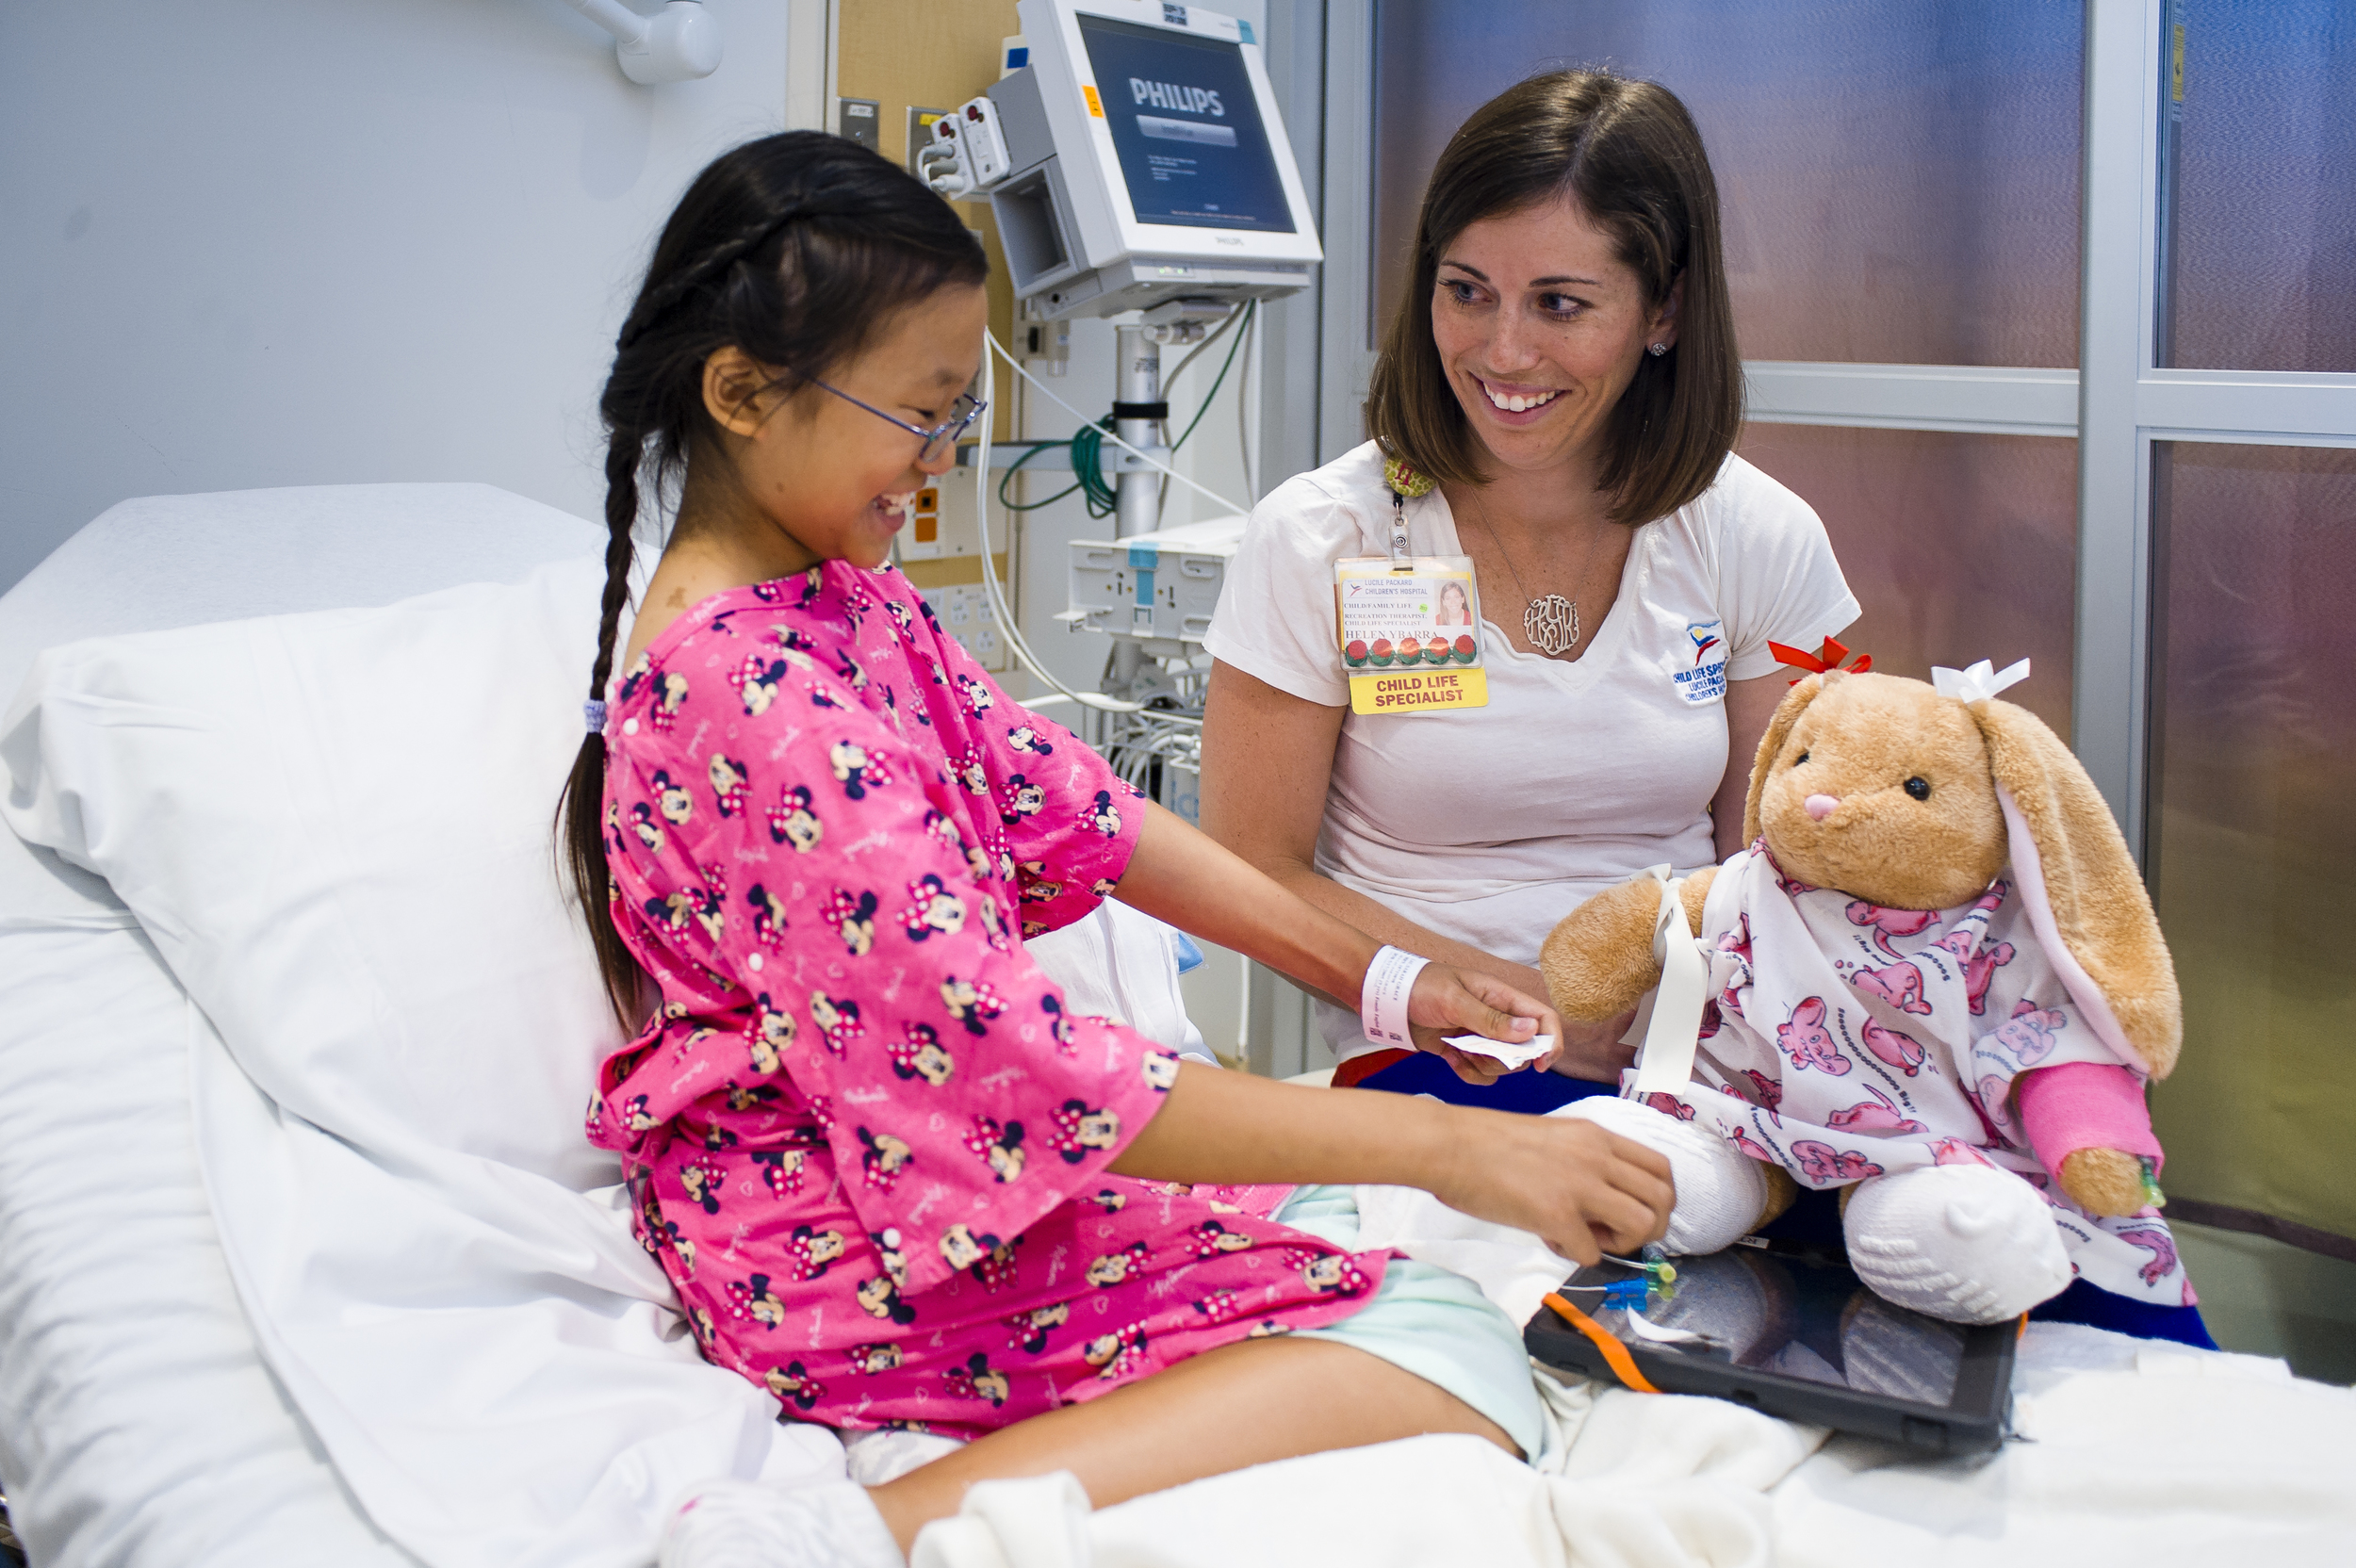 A child life specialist demonstrates an upcoming procedure on a stuffed animal.